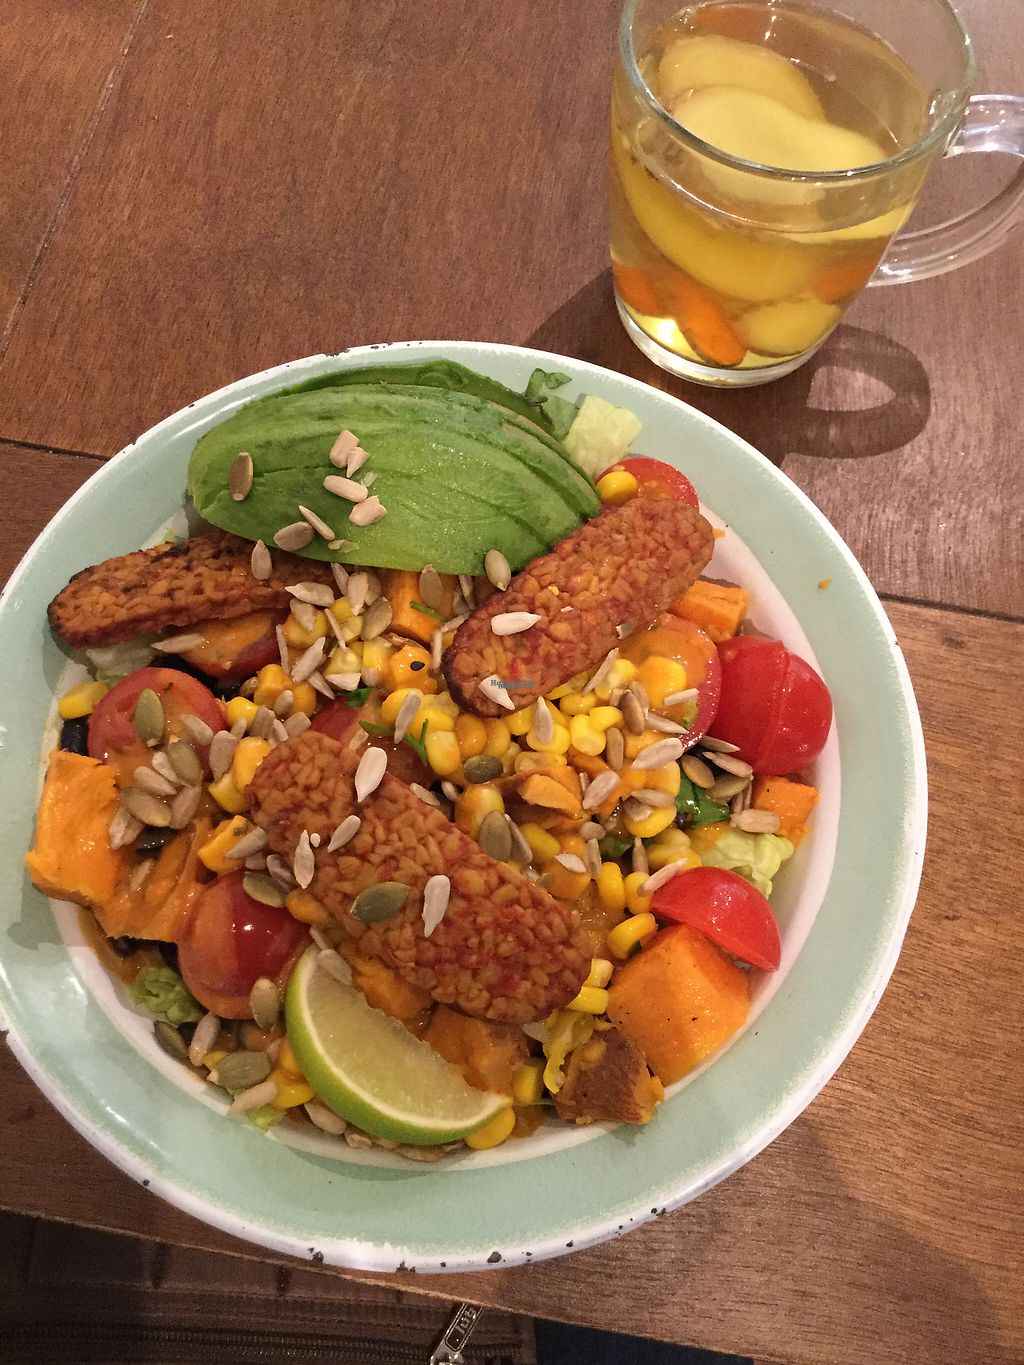 """Photo of SLA - Westerstraat  by <a href=""""/members/profile/Minilowen"""">Minilowen</a> <br/>Mexican Tempeh Bowl. This saved me! <br/> April 1, 2017  - <a href='/contact/abuse/image/44552/243417'>Report</a>"""